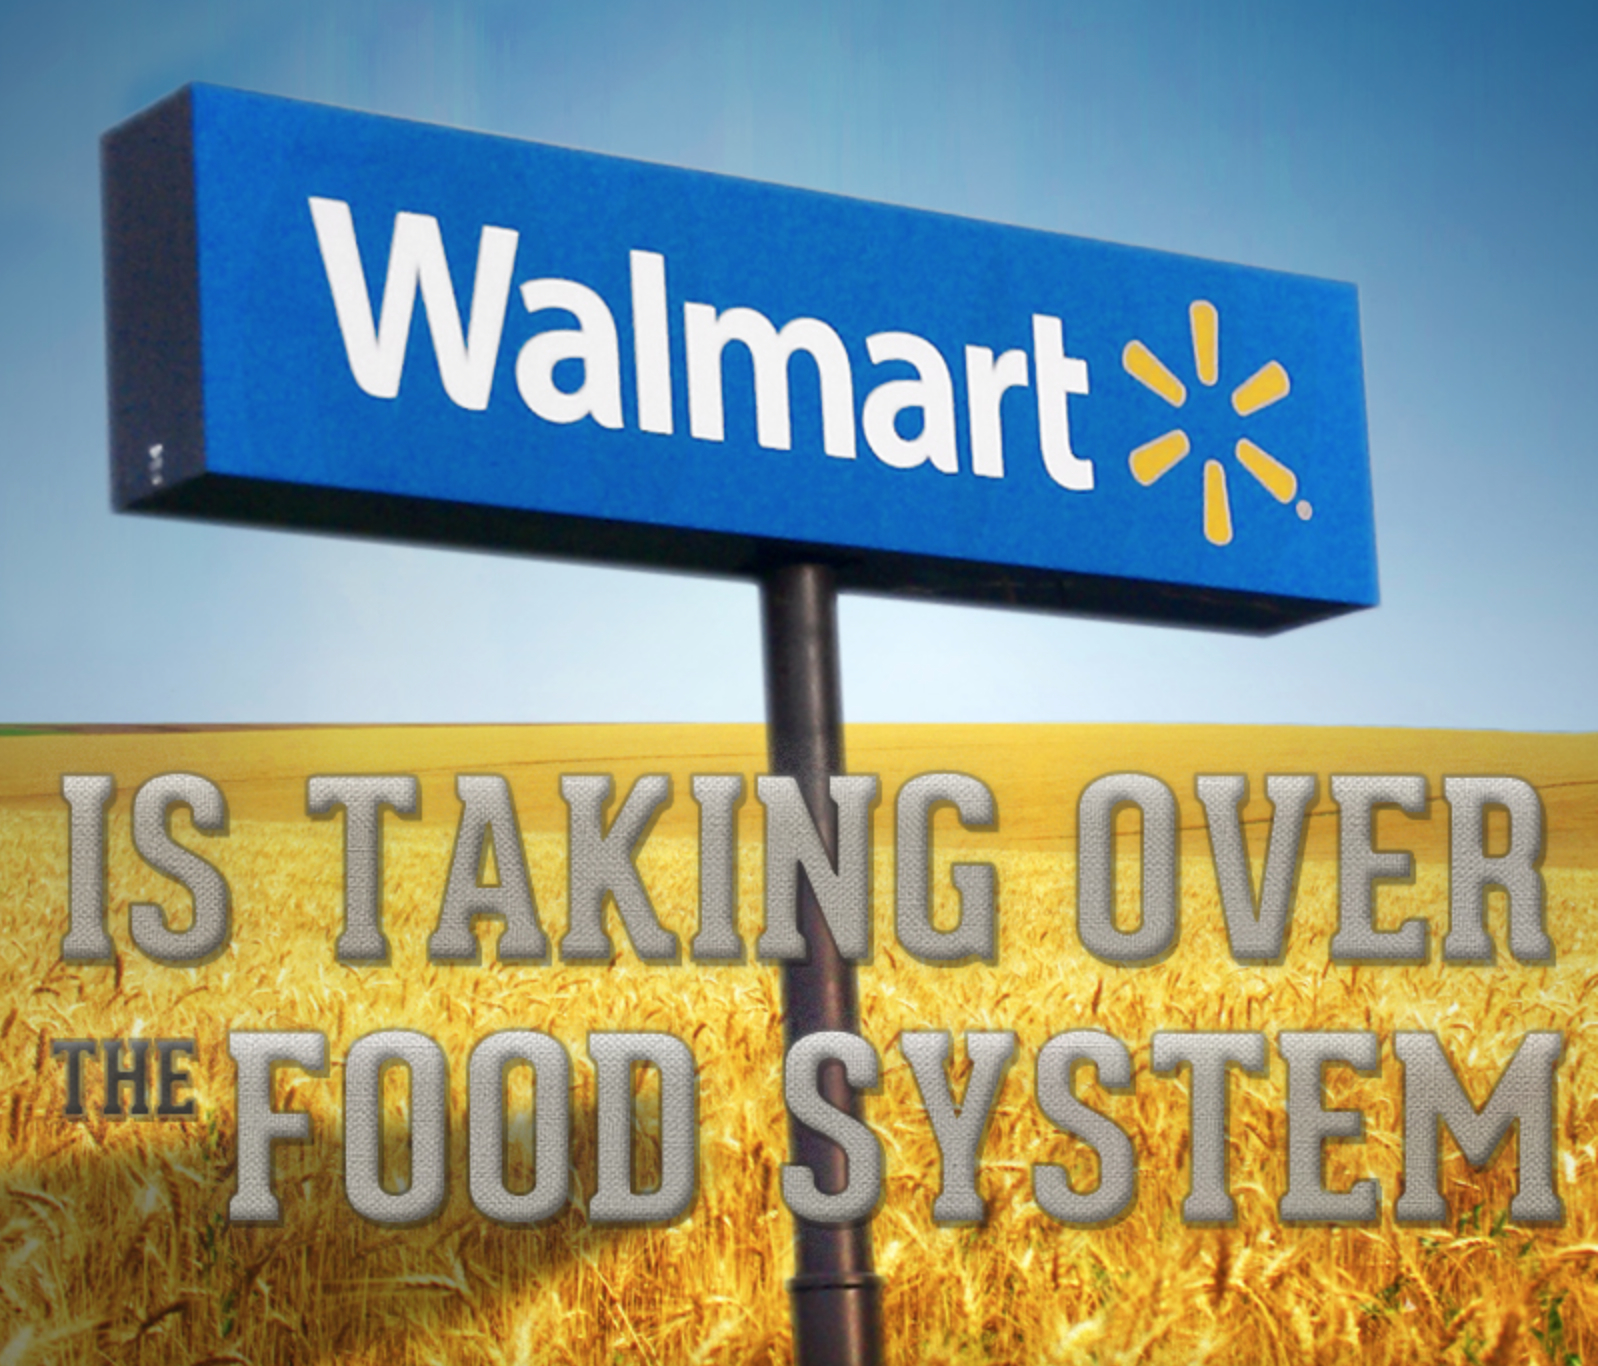 How Walmart is Devouring the Food System (Infographic) - Institute ...